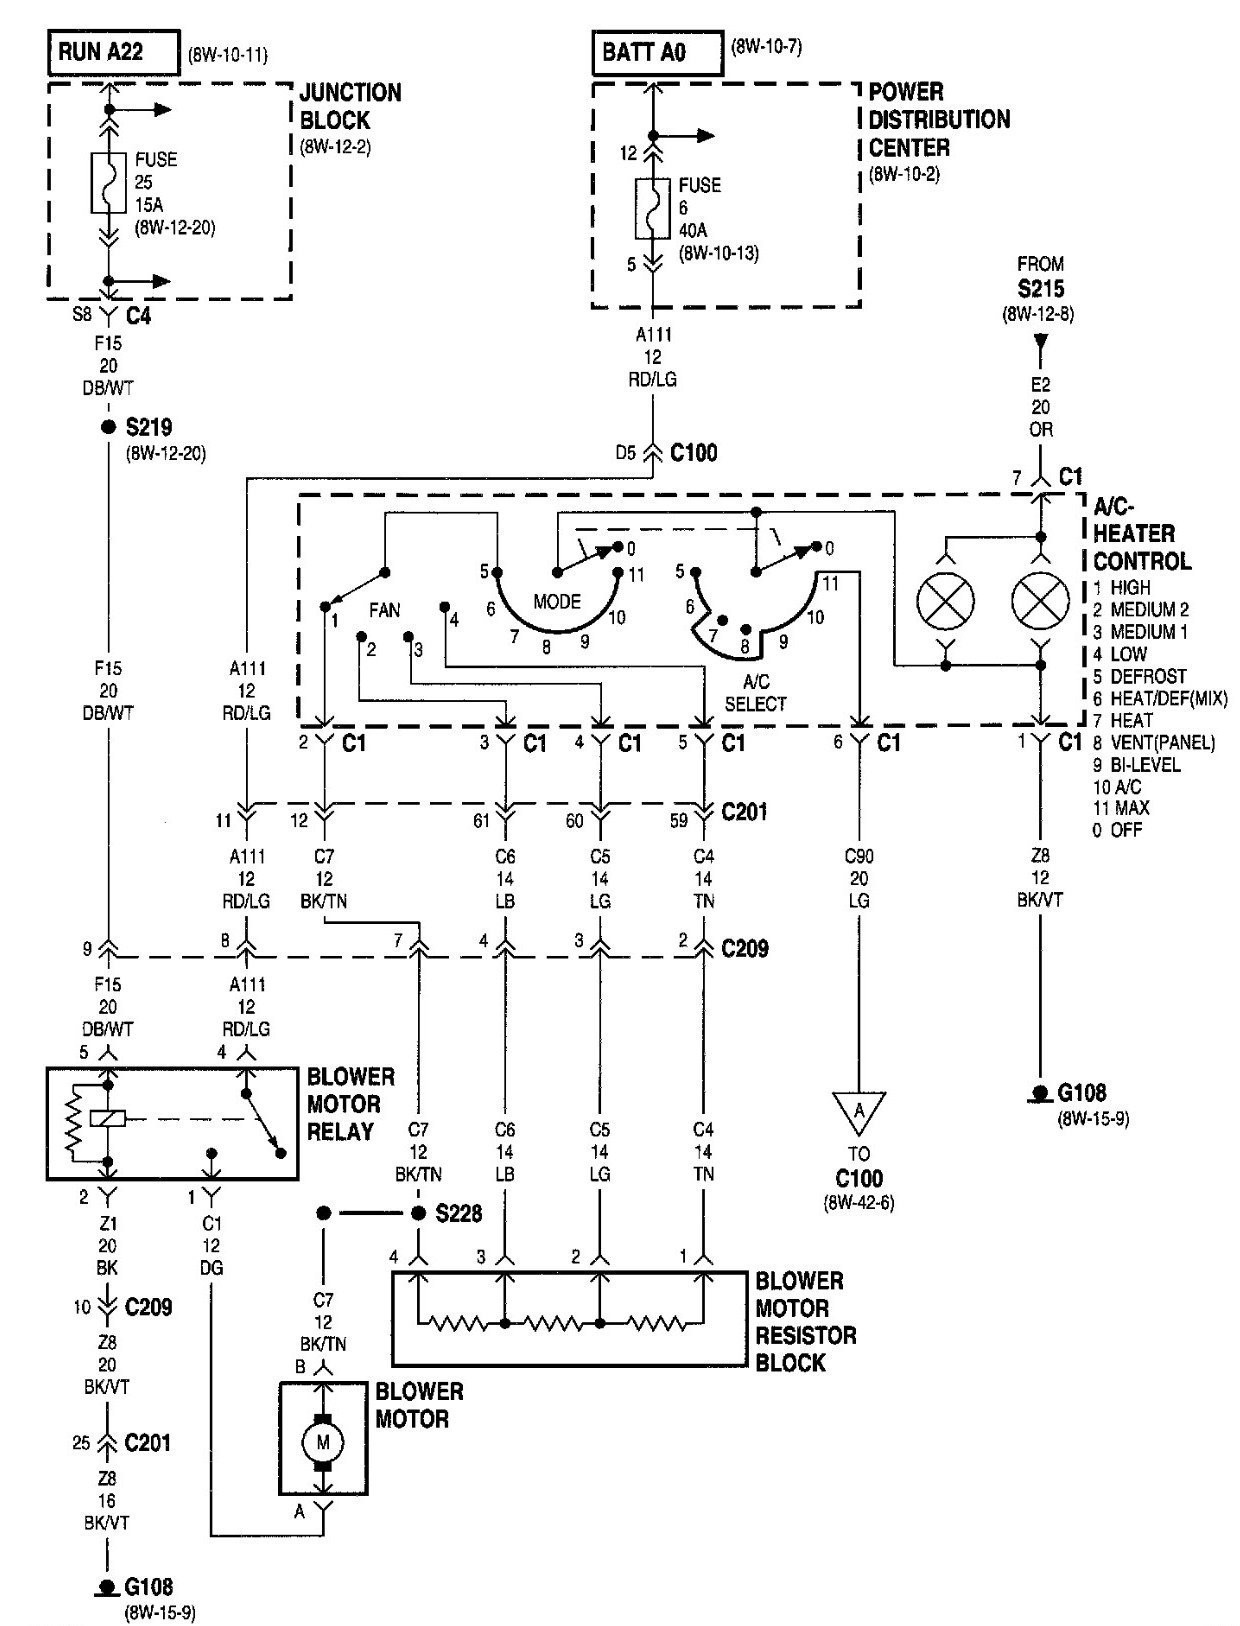 Jeep grand cherokee engine diagram wiring library